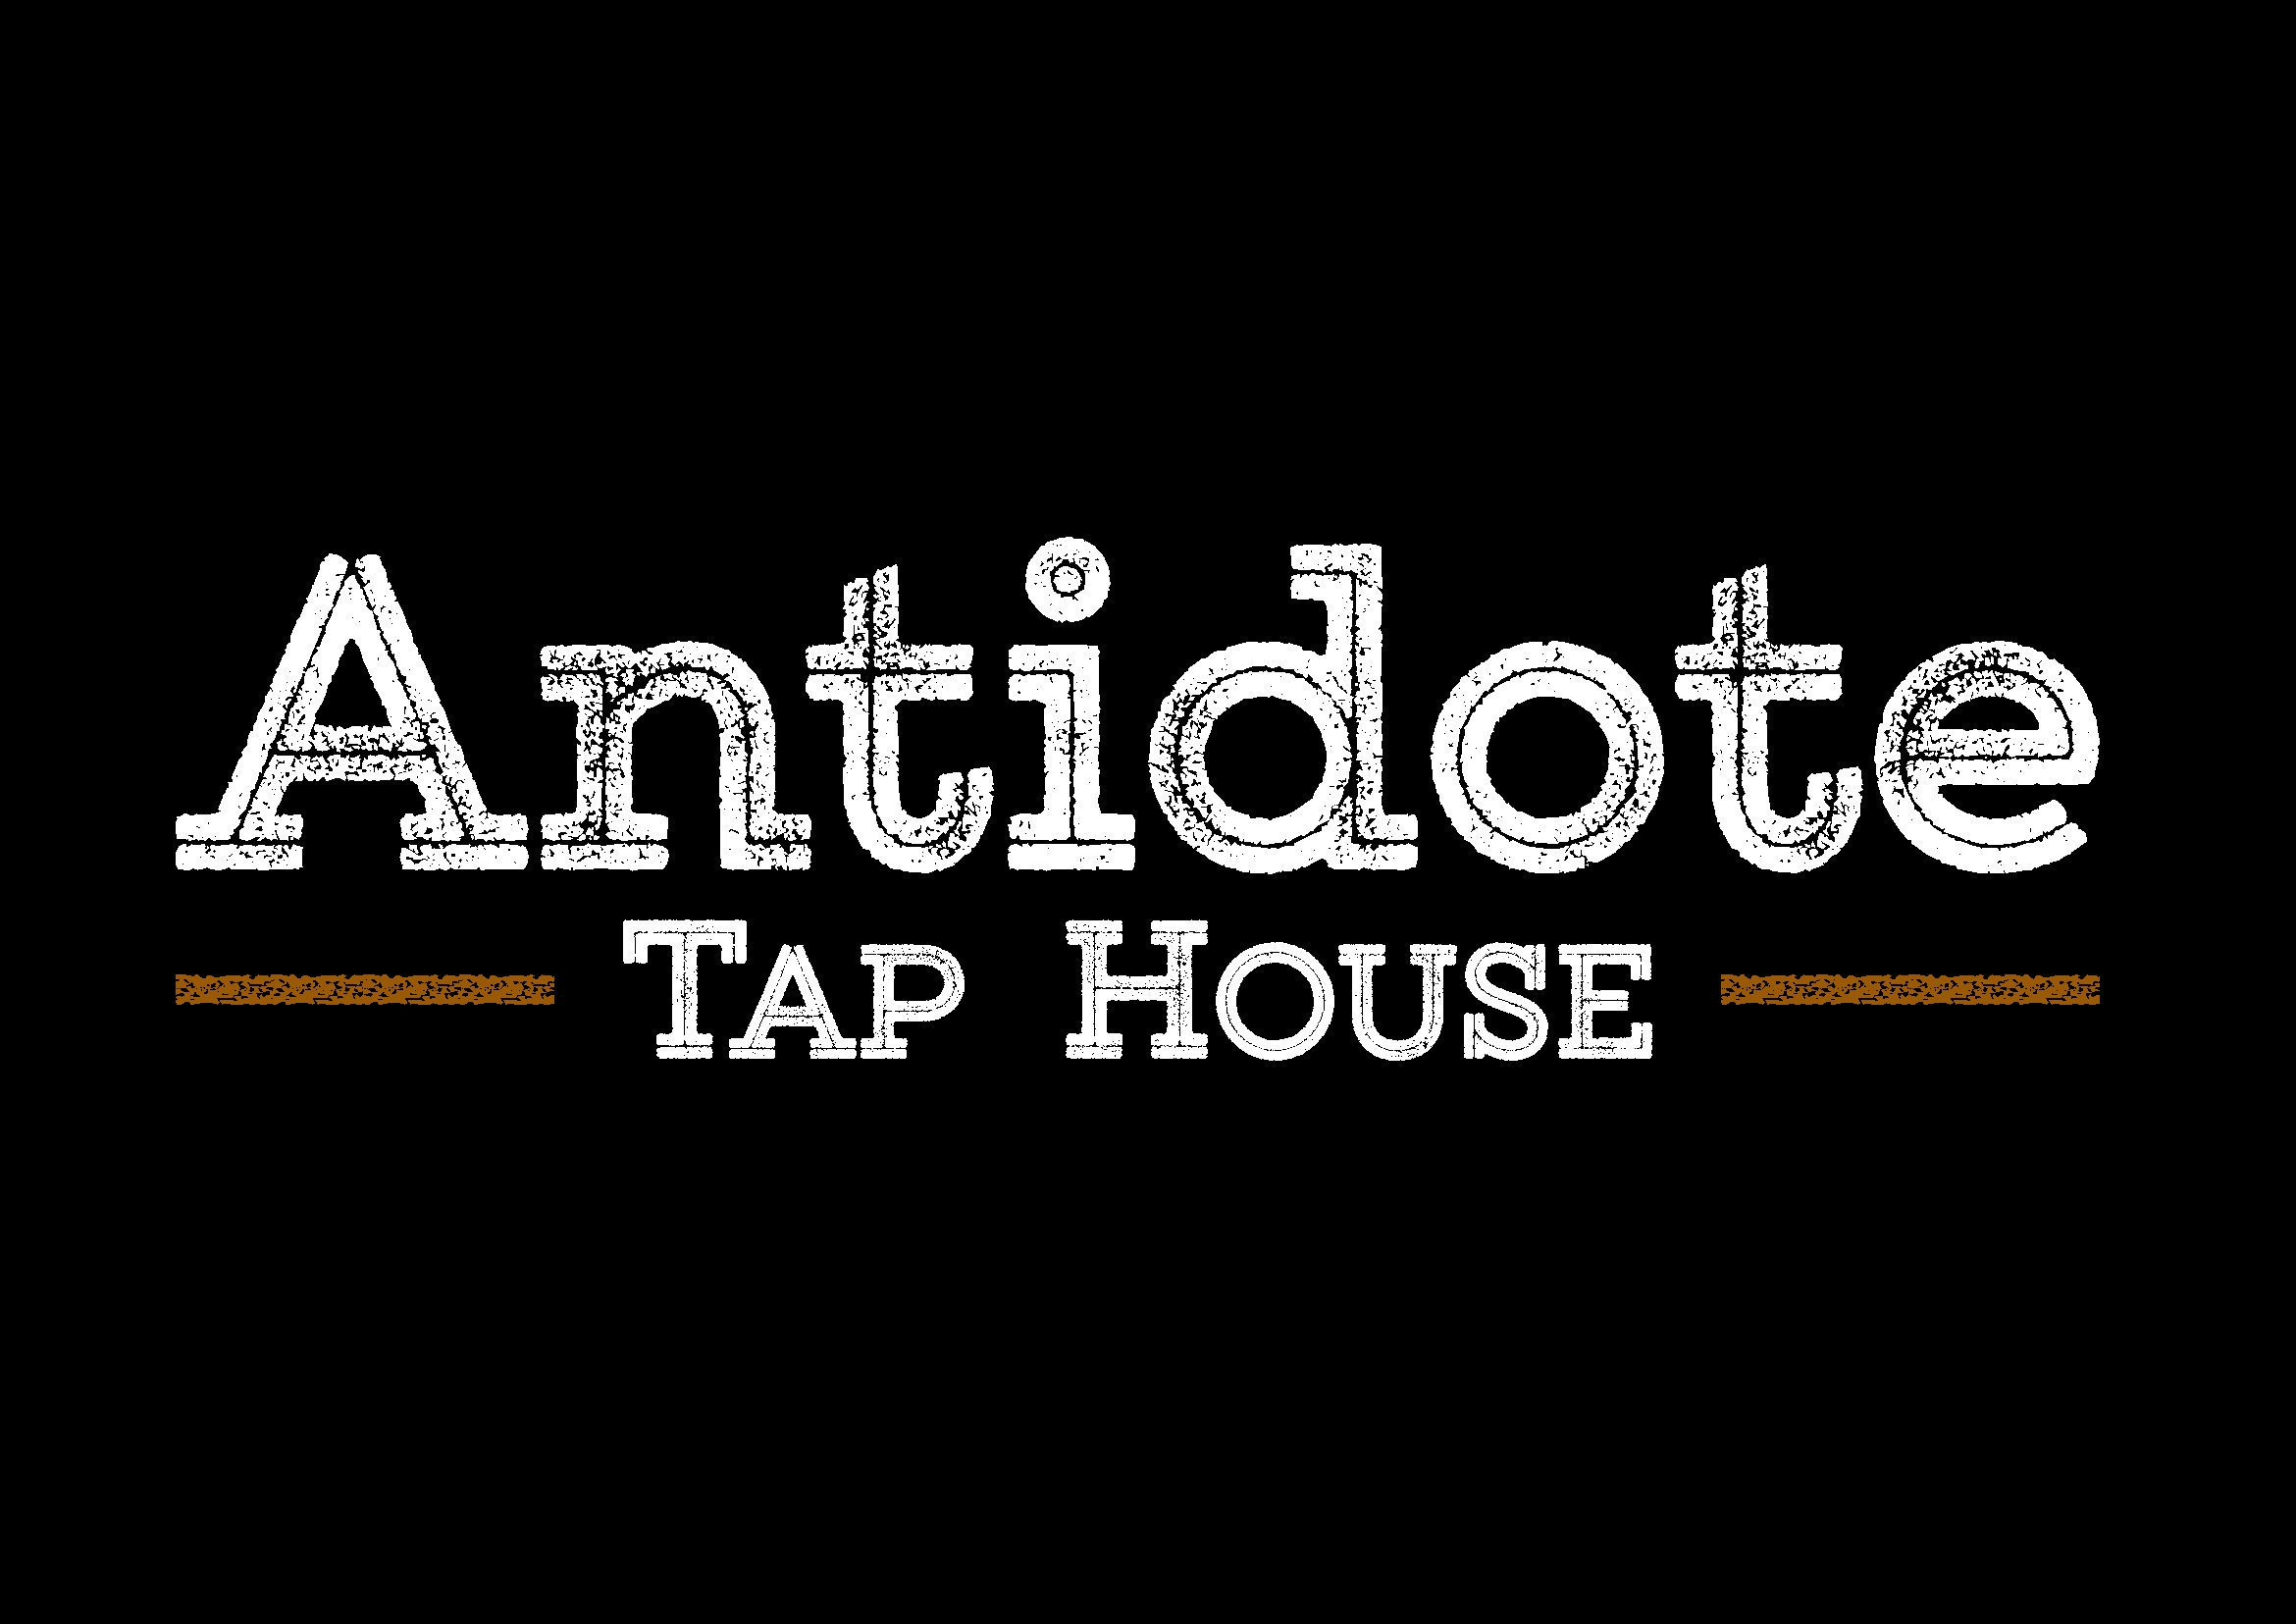 #1 Antidote - 719 Triangle Shopping Center, Longview360.232.8283www.antidotetaphouse.comFree item! Call for details!